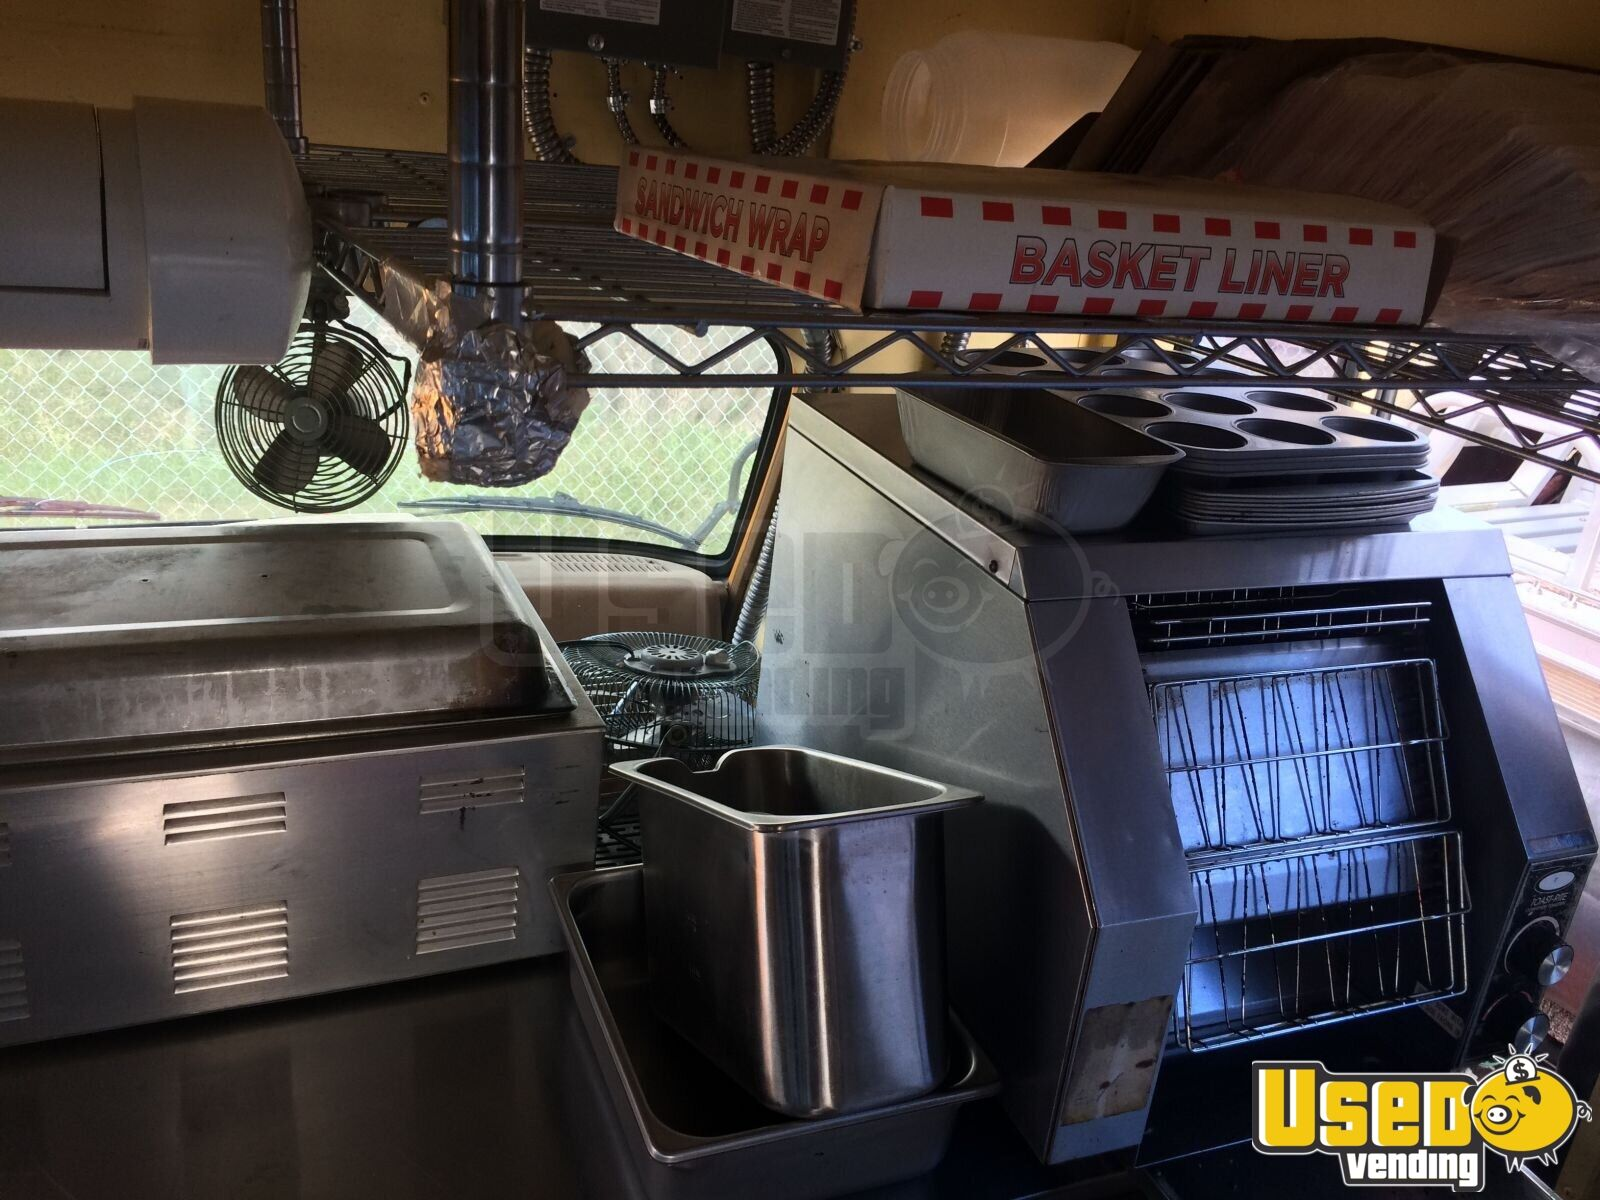 1988 Chevy Duramax All-purpose Food Truck Fire Extinguisher Texas Gas Engine for Sale - 16